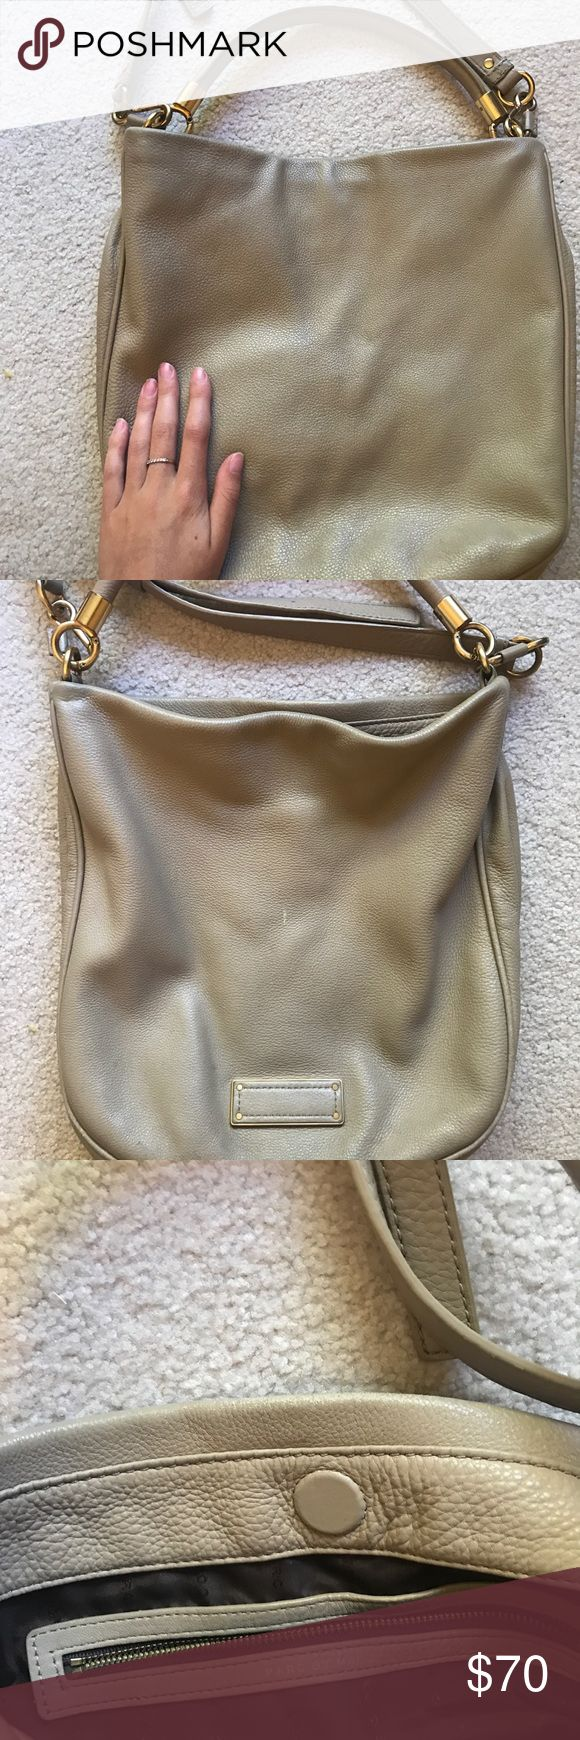 Large Marc by Marc Jacobs crossbody bag - Cream Cream Marc Jacobs purse in great condition. Marc By Marc Jacobs Bags Crossbody Bags